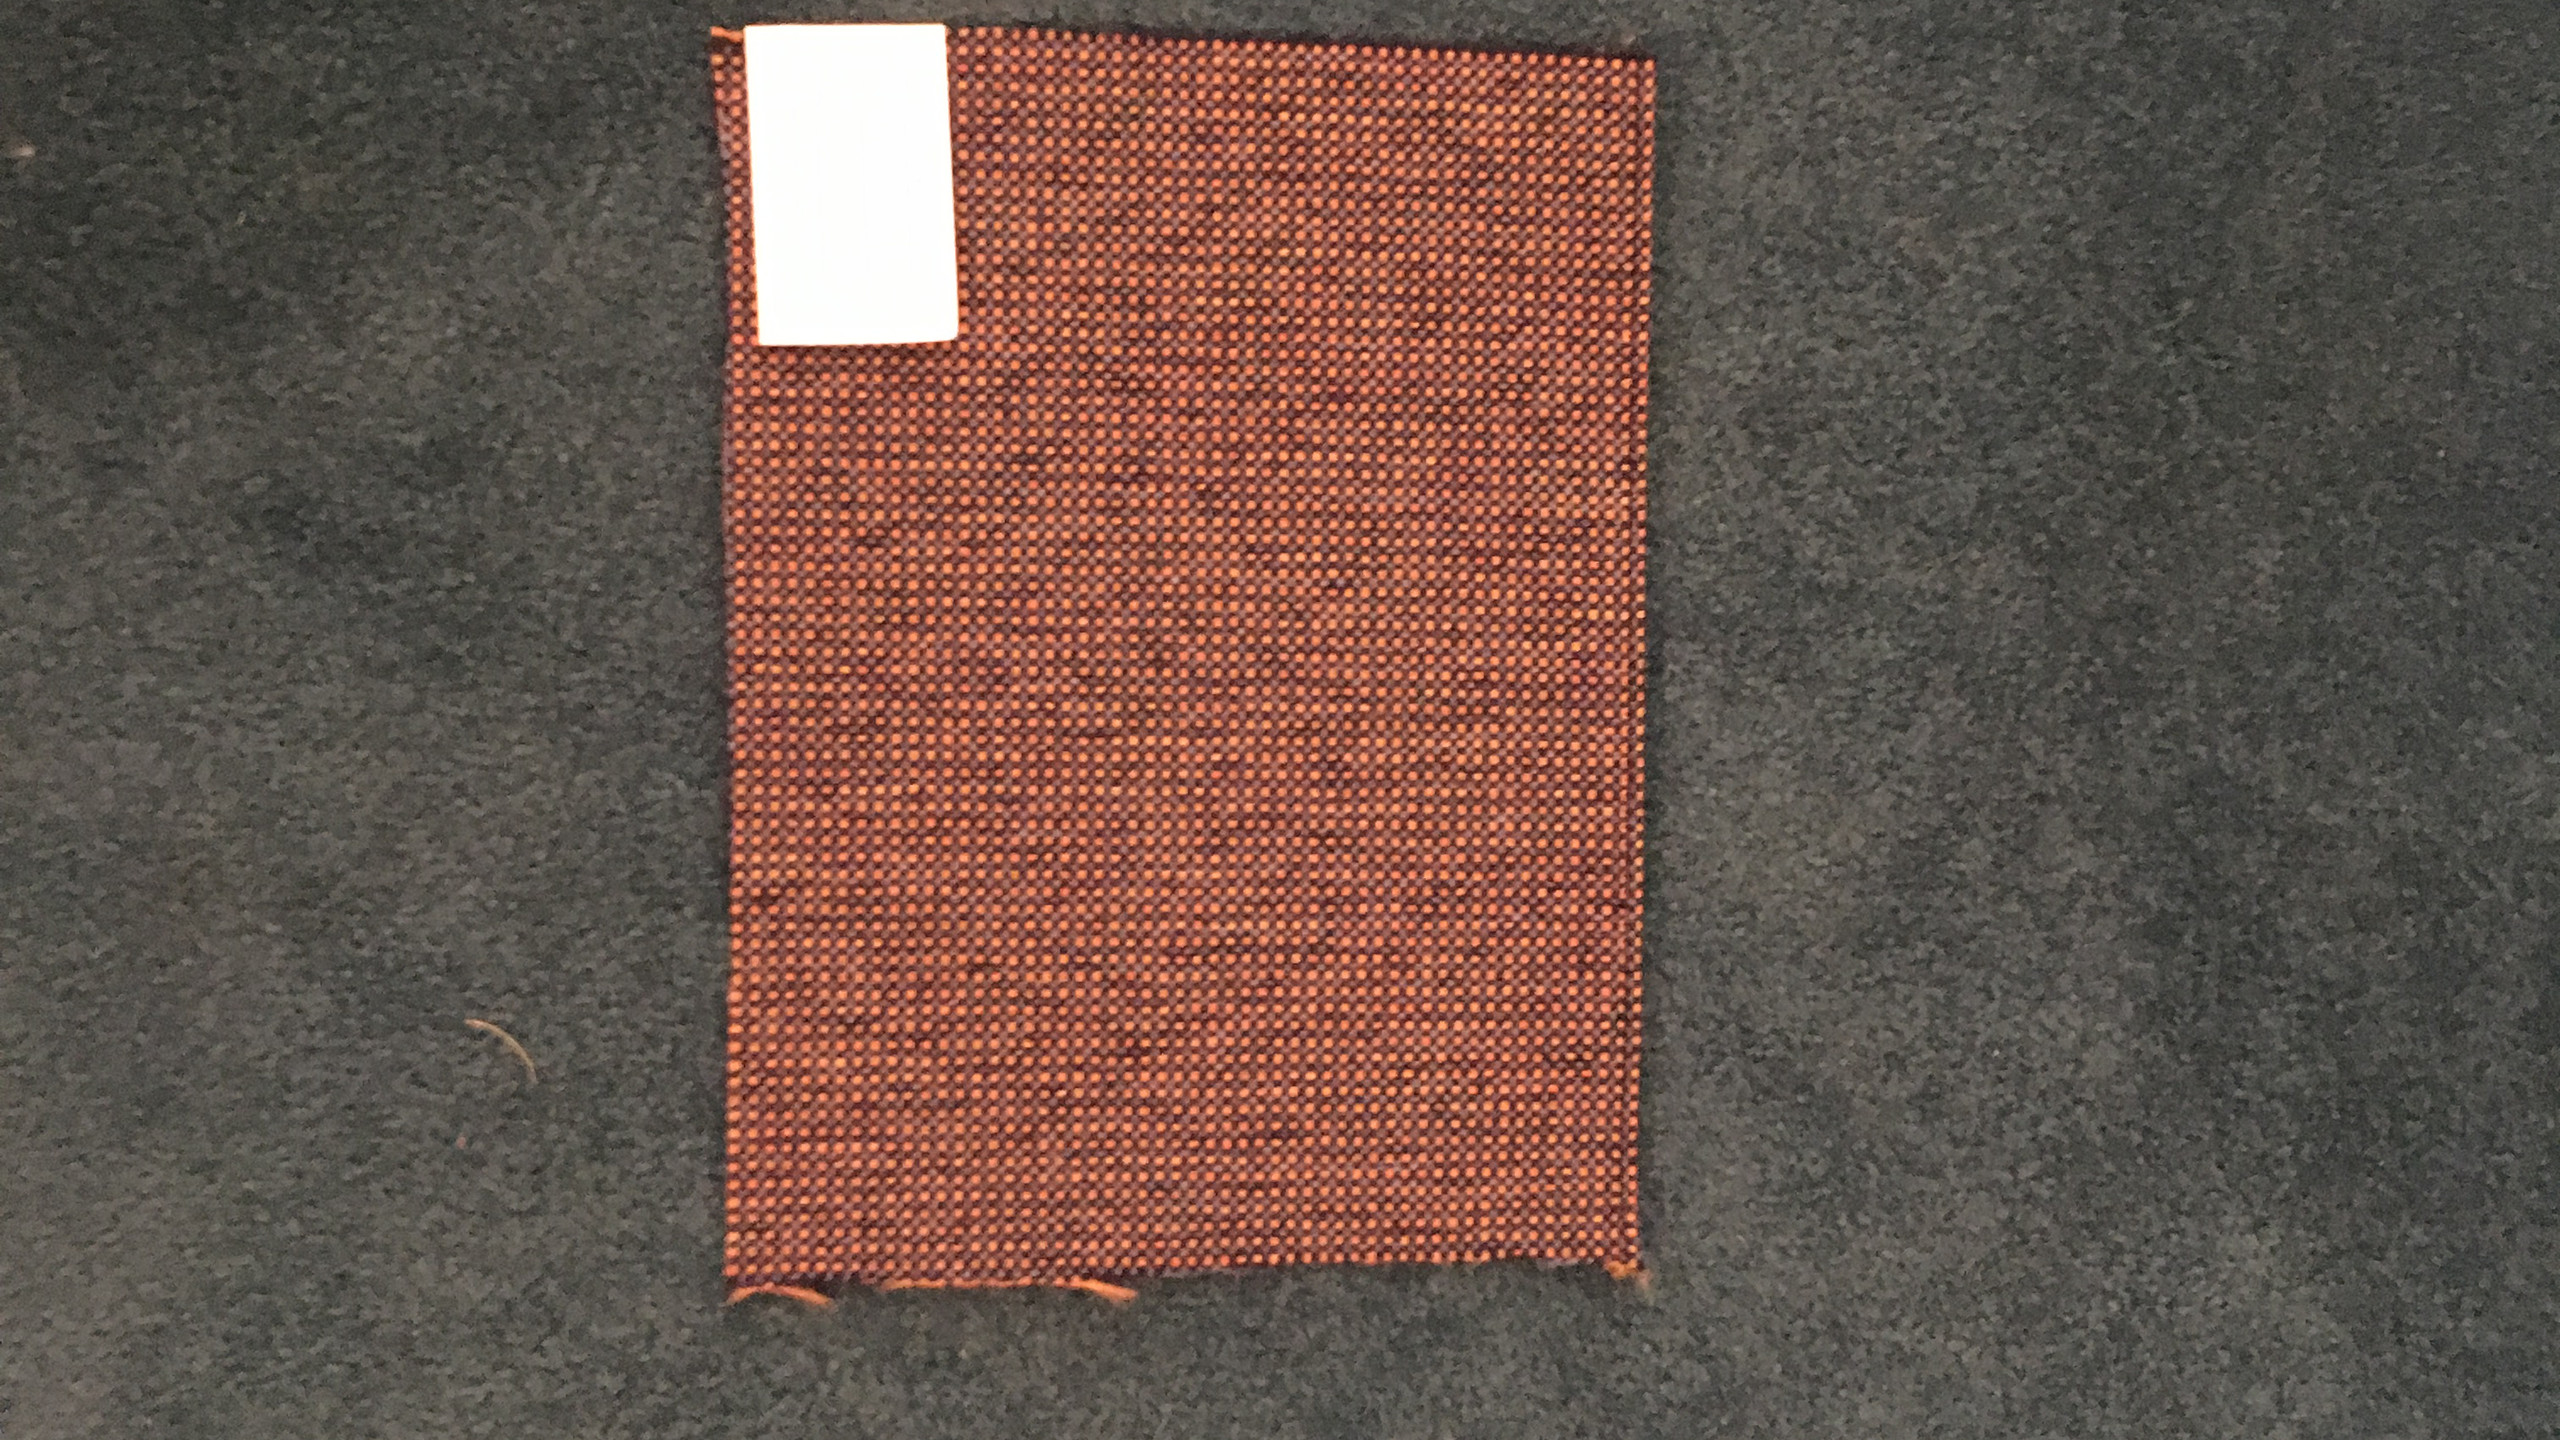 Fabric sample on carpet - mid range